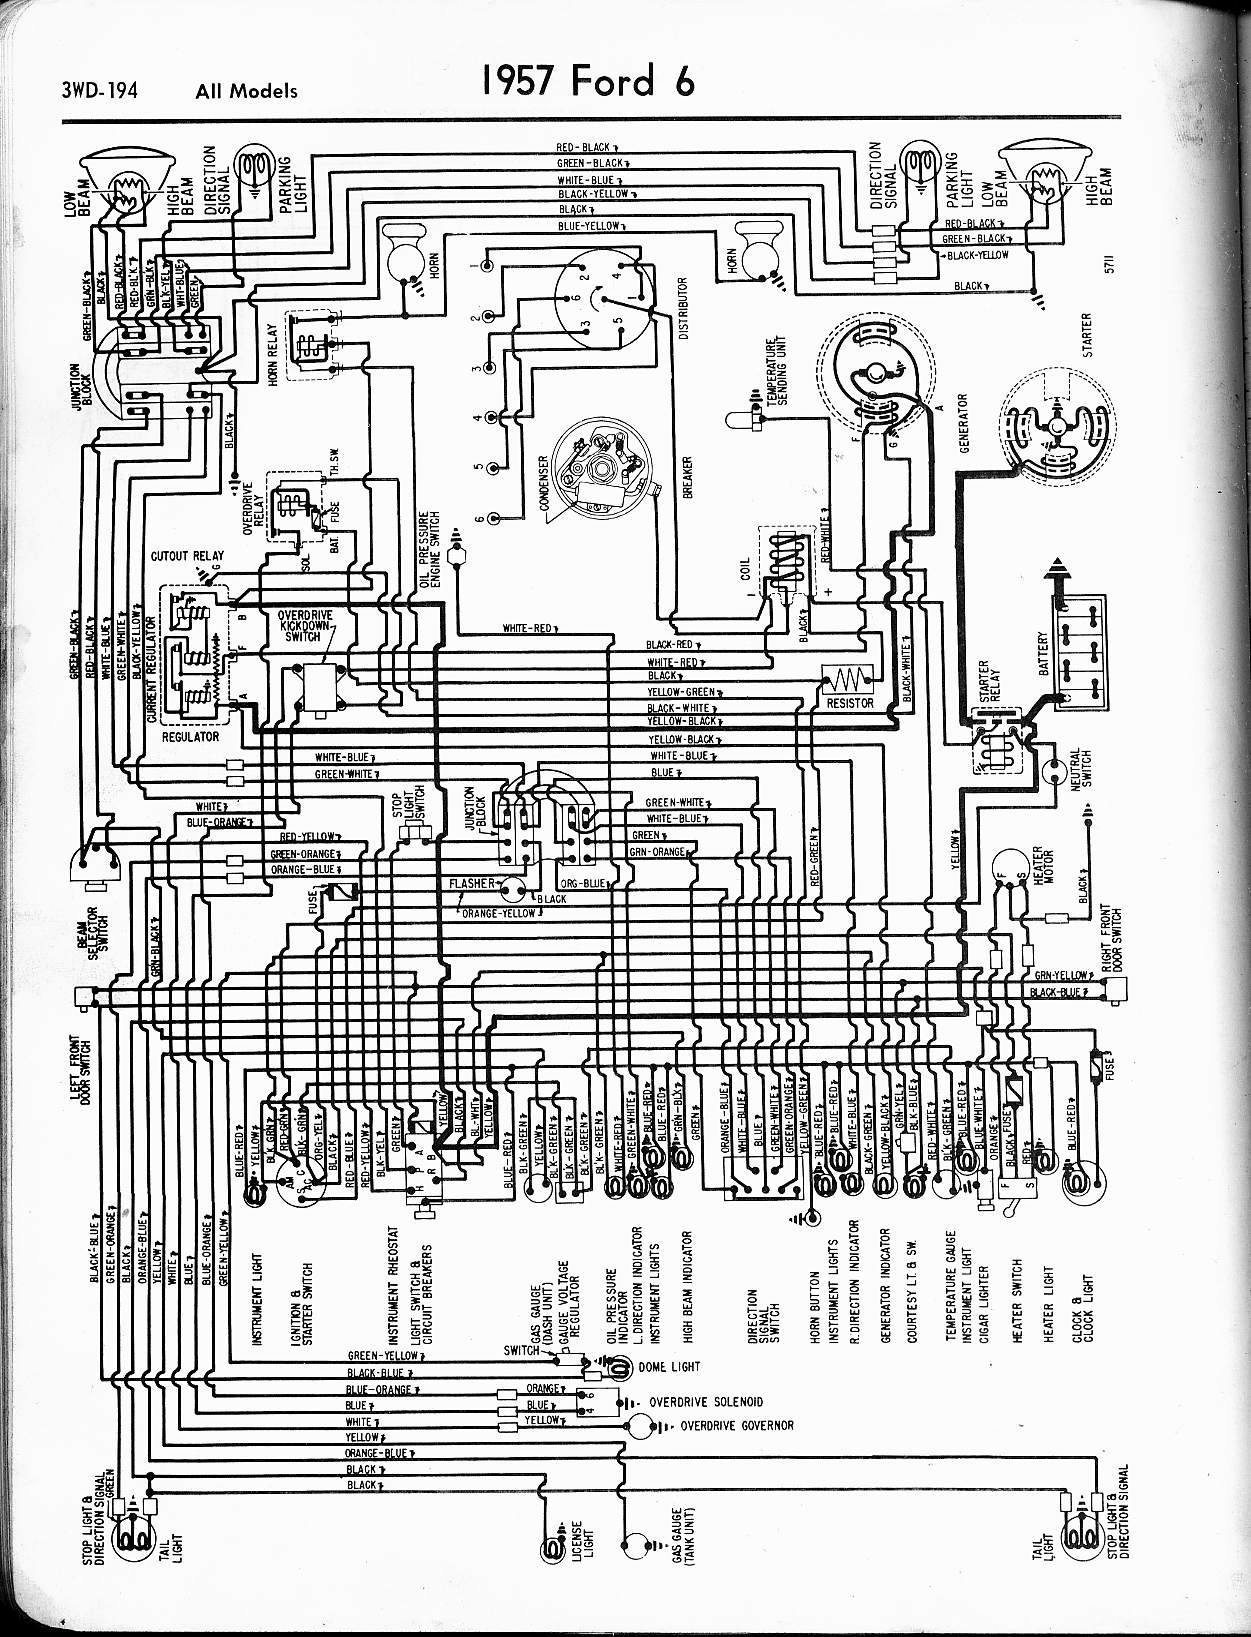 57_ford_wiring ford diagrams ford ltl 9000 wiring diagram at nearapp.co